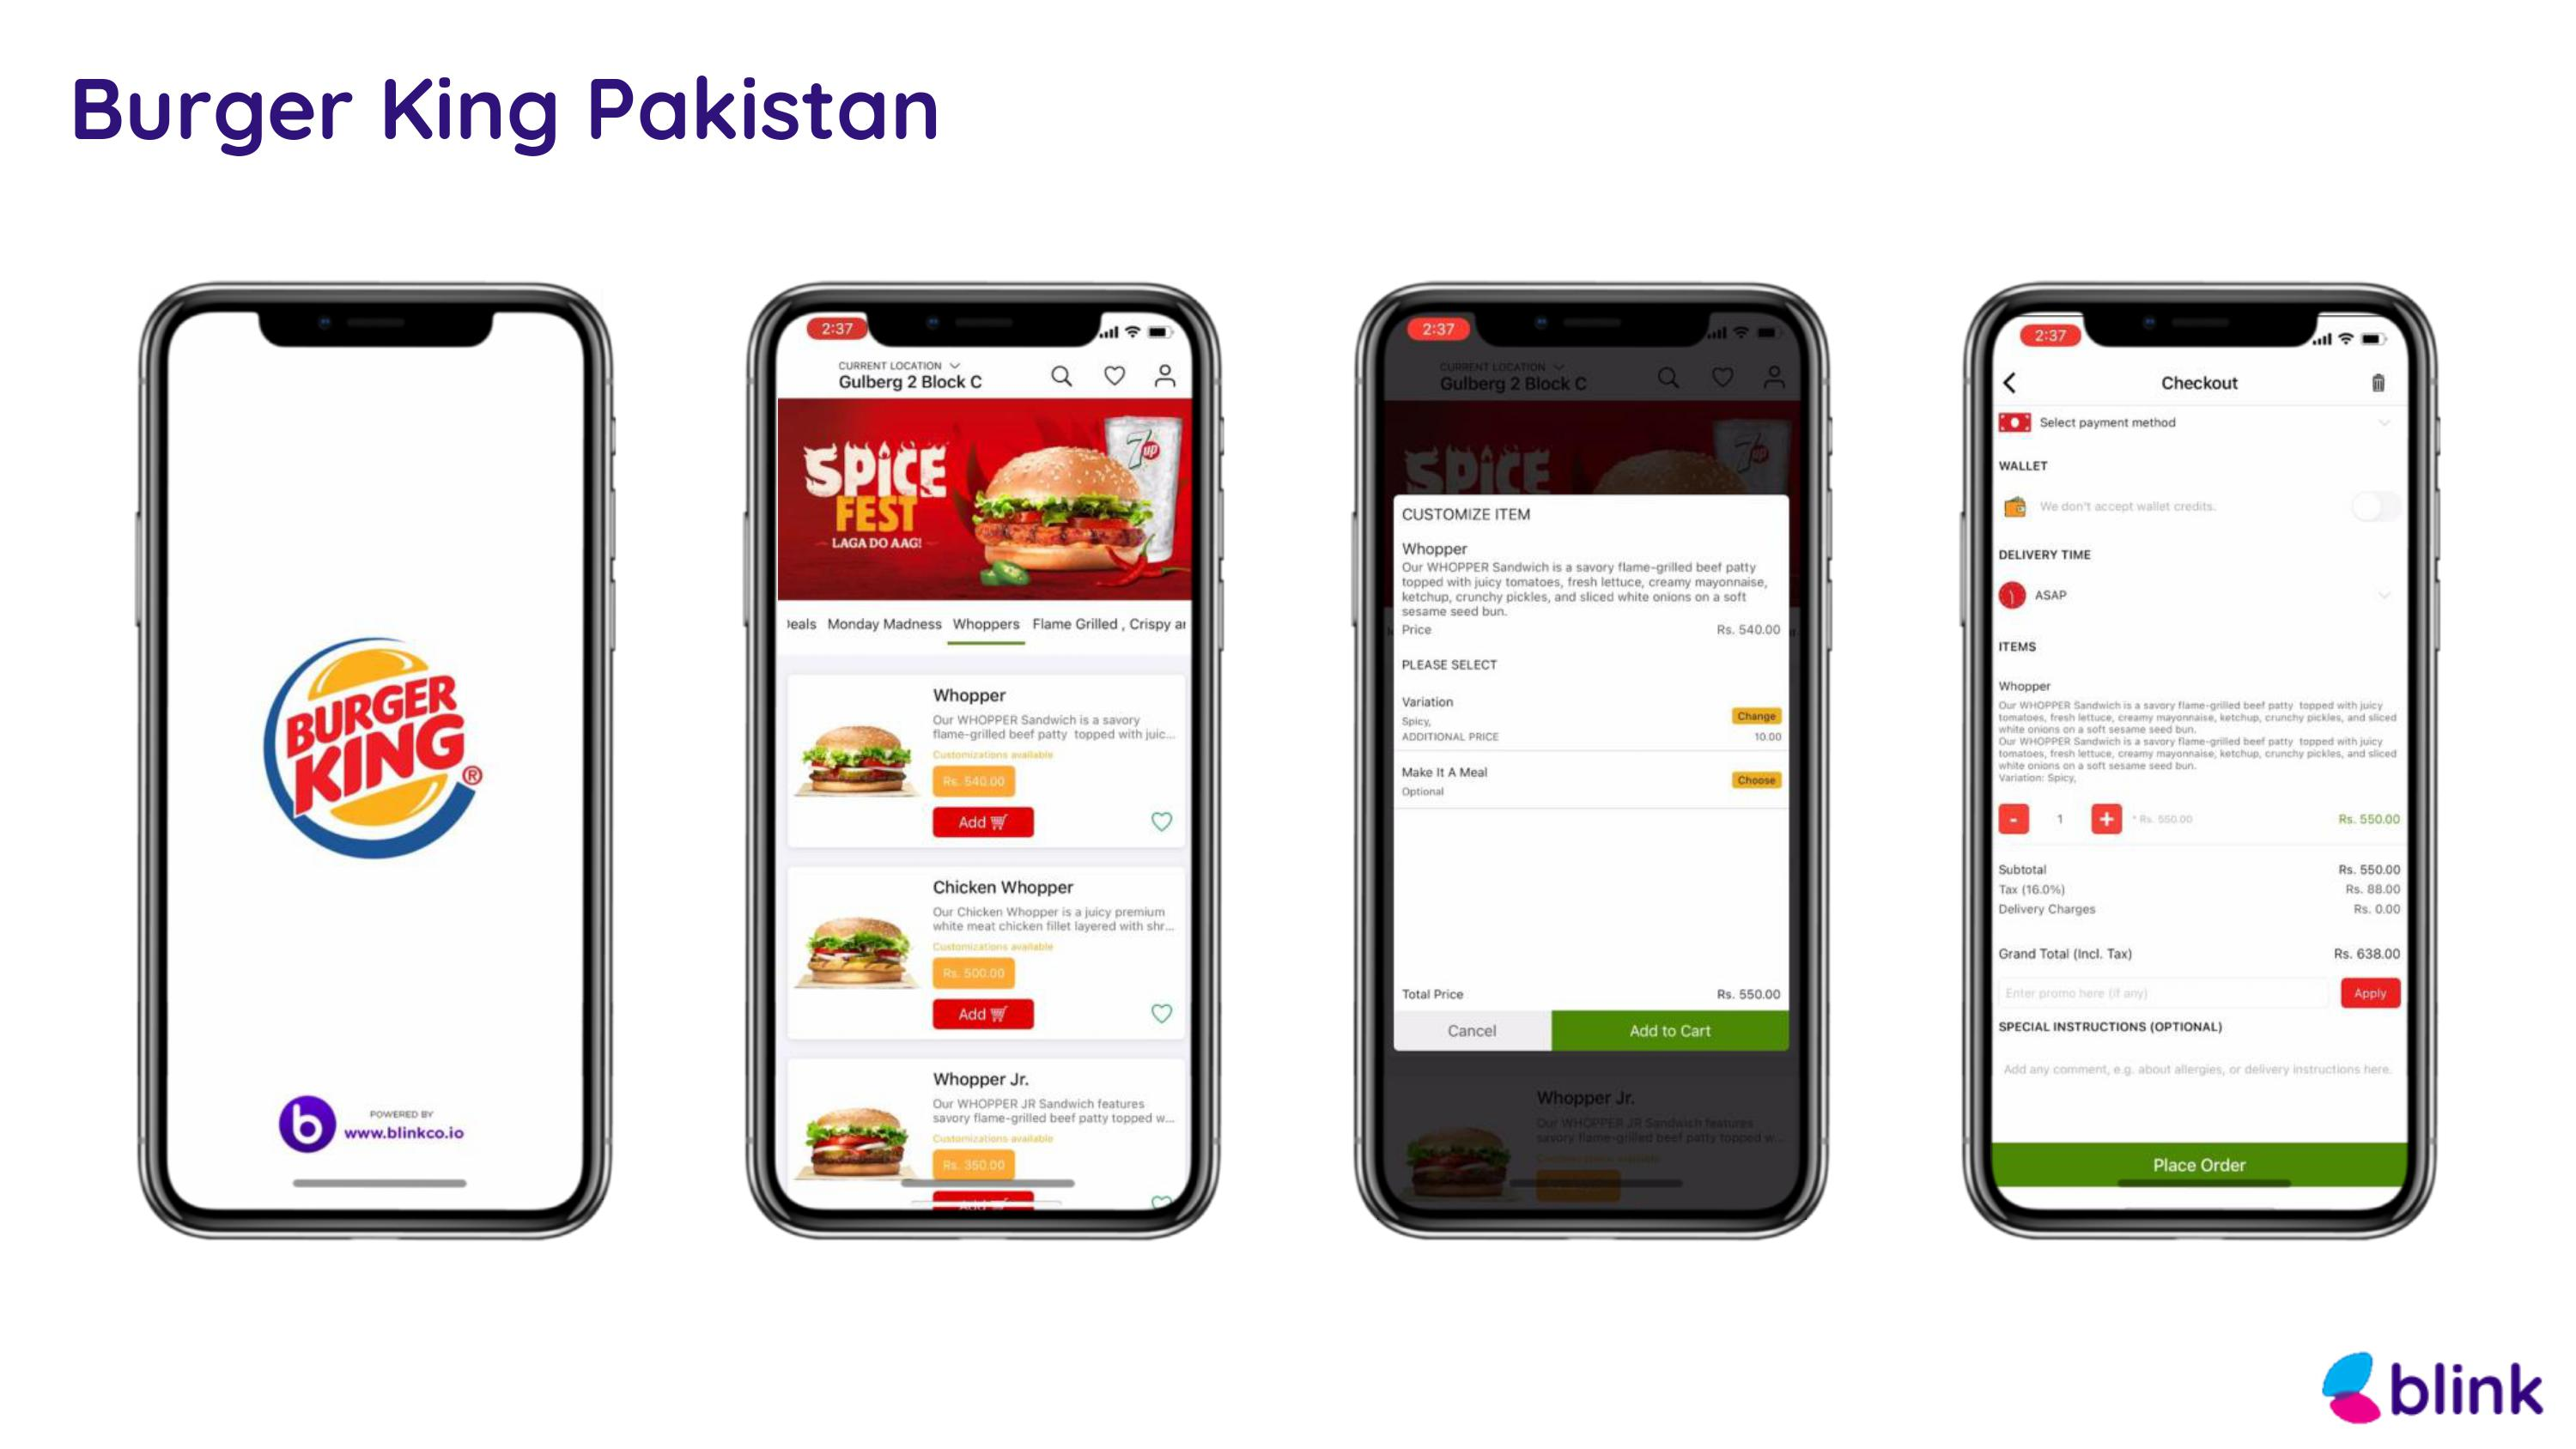 Burger King Pakistan - Mobile App powered by Blink